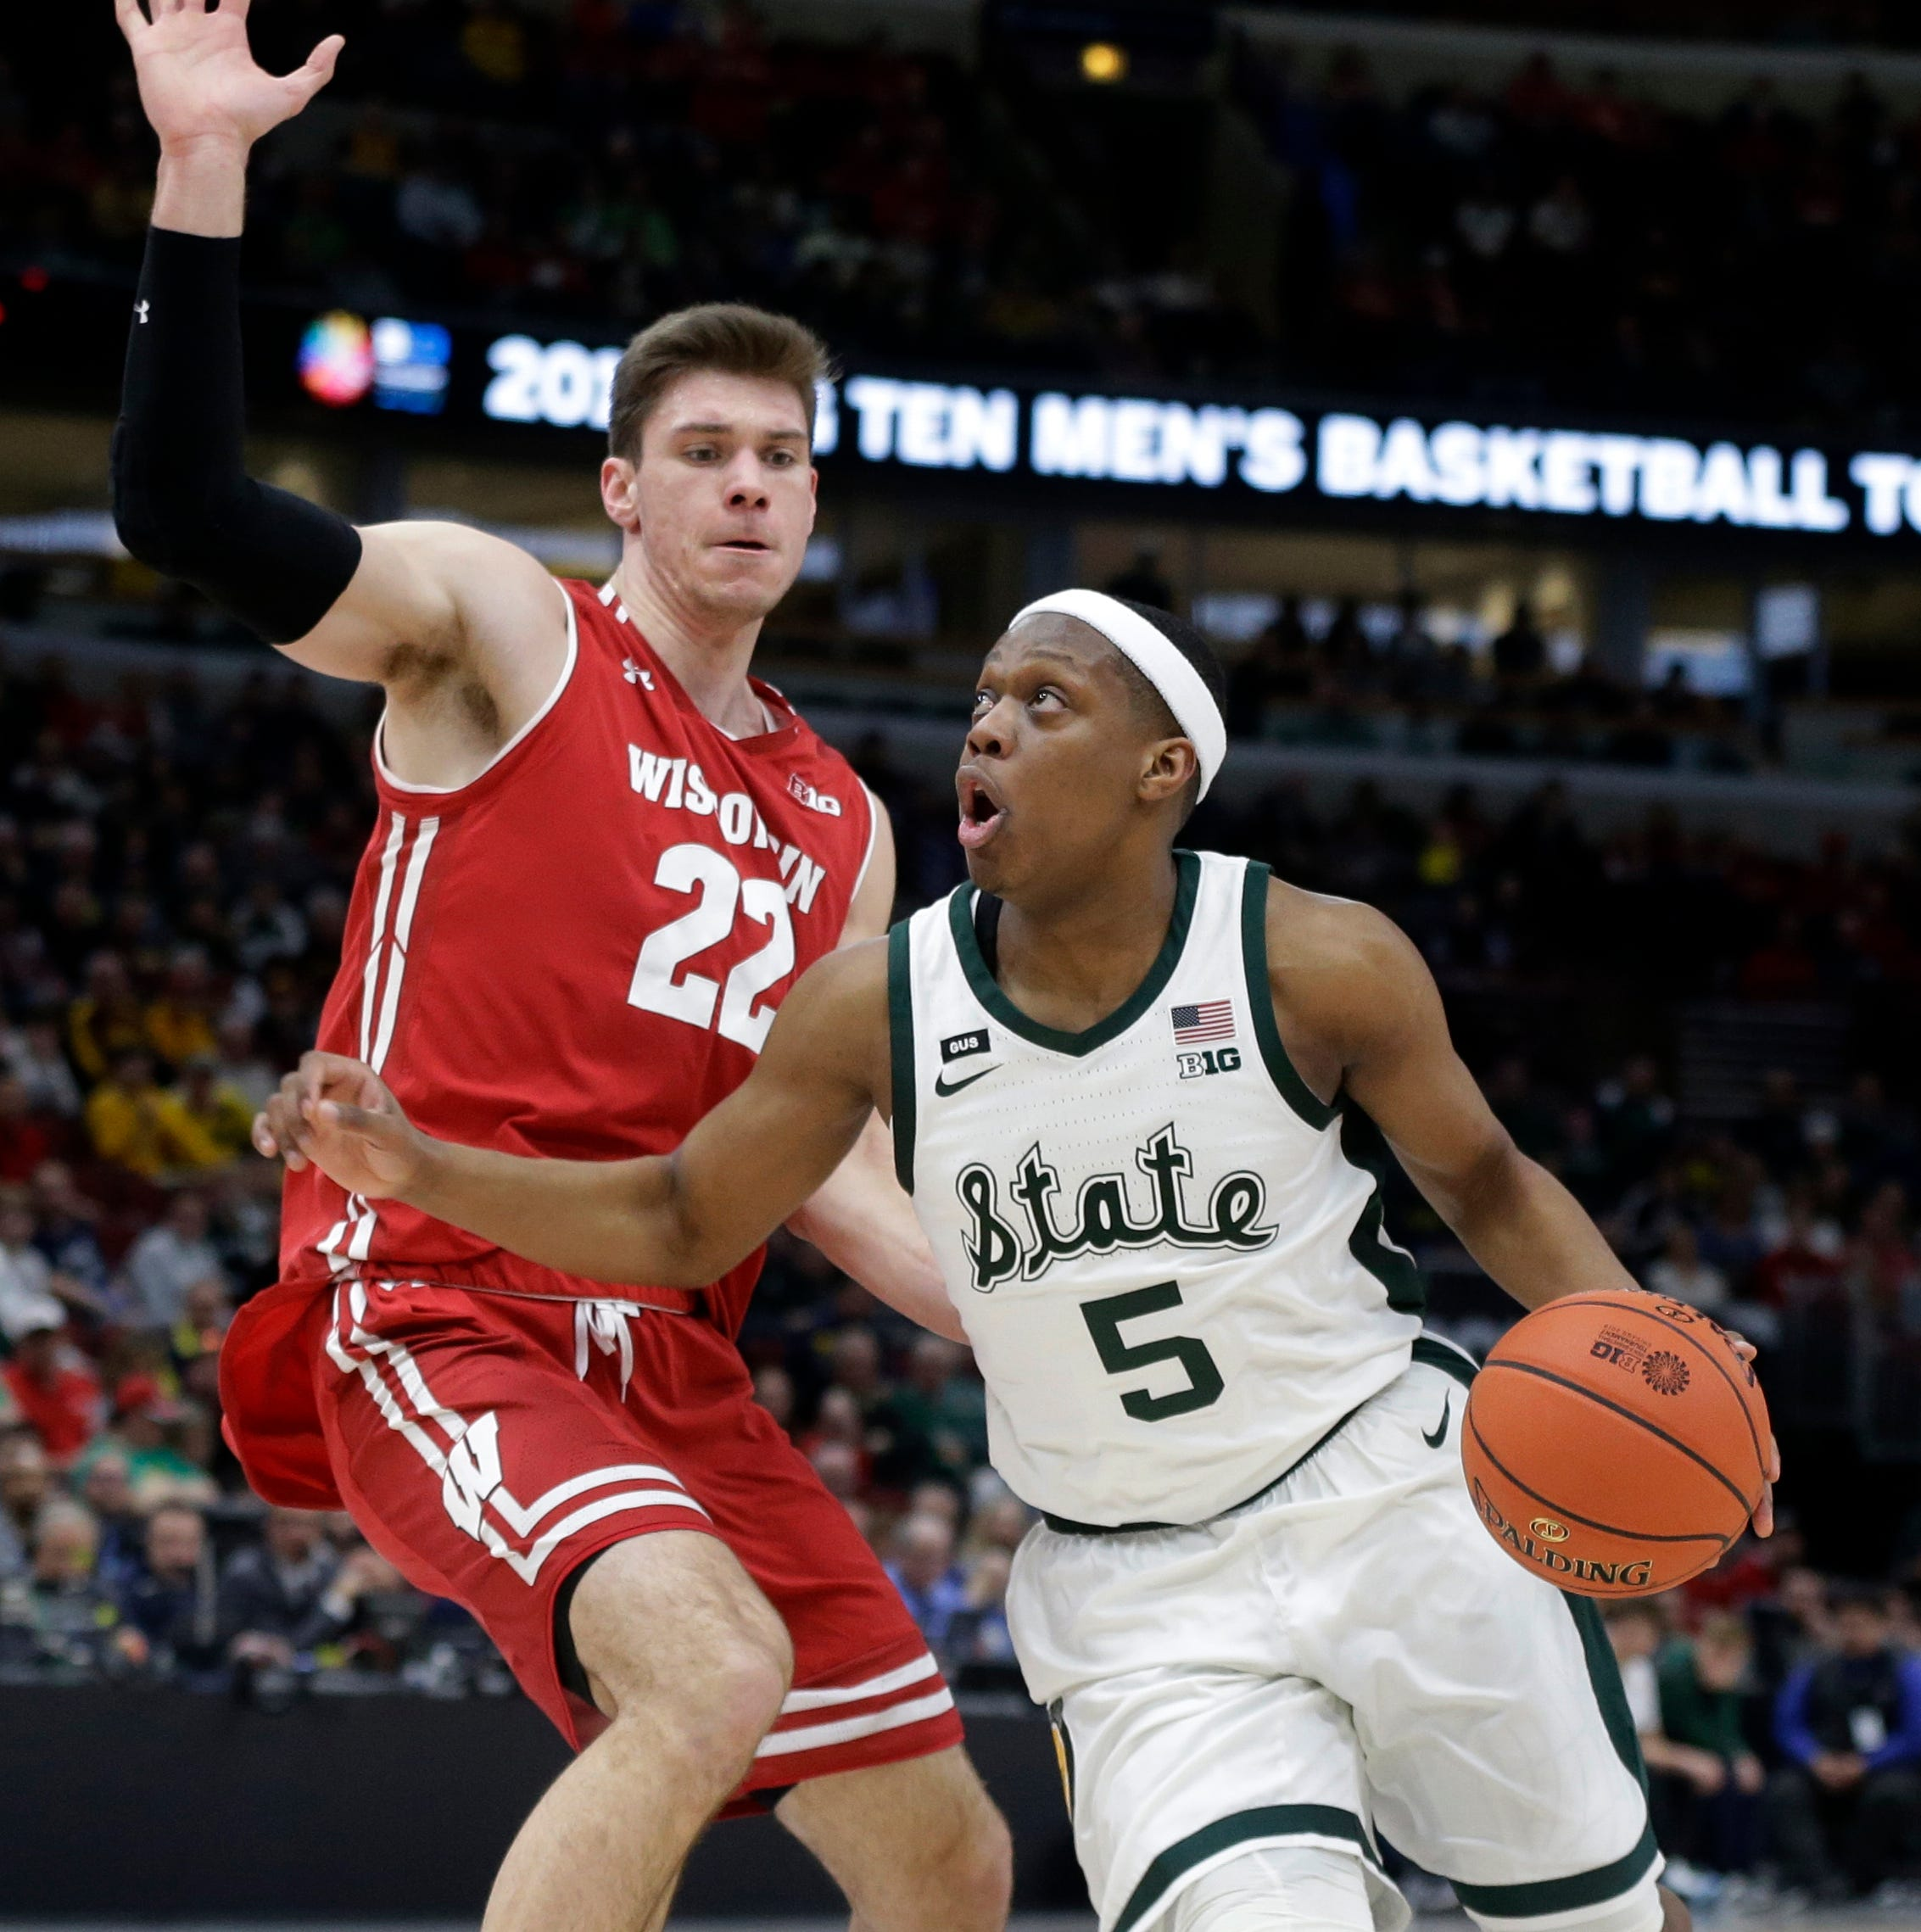 Twitter angry that Michigan State's Cassius Winston is playing with injured toe